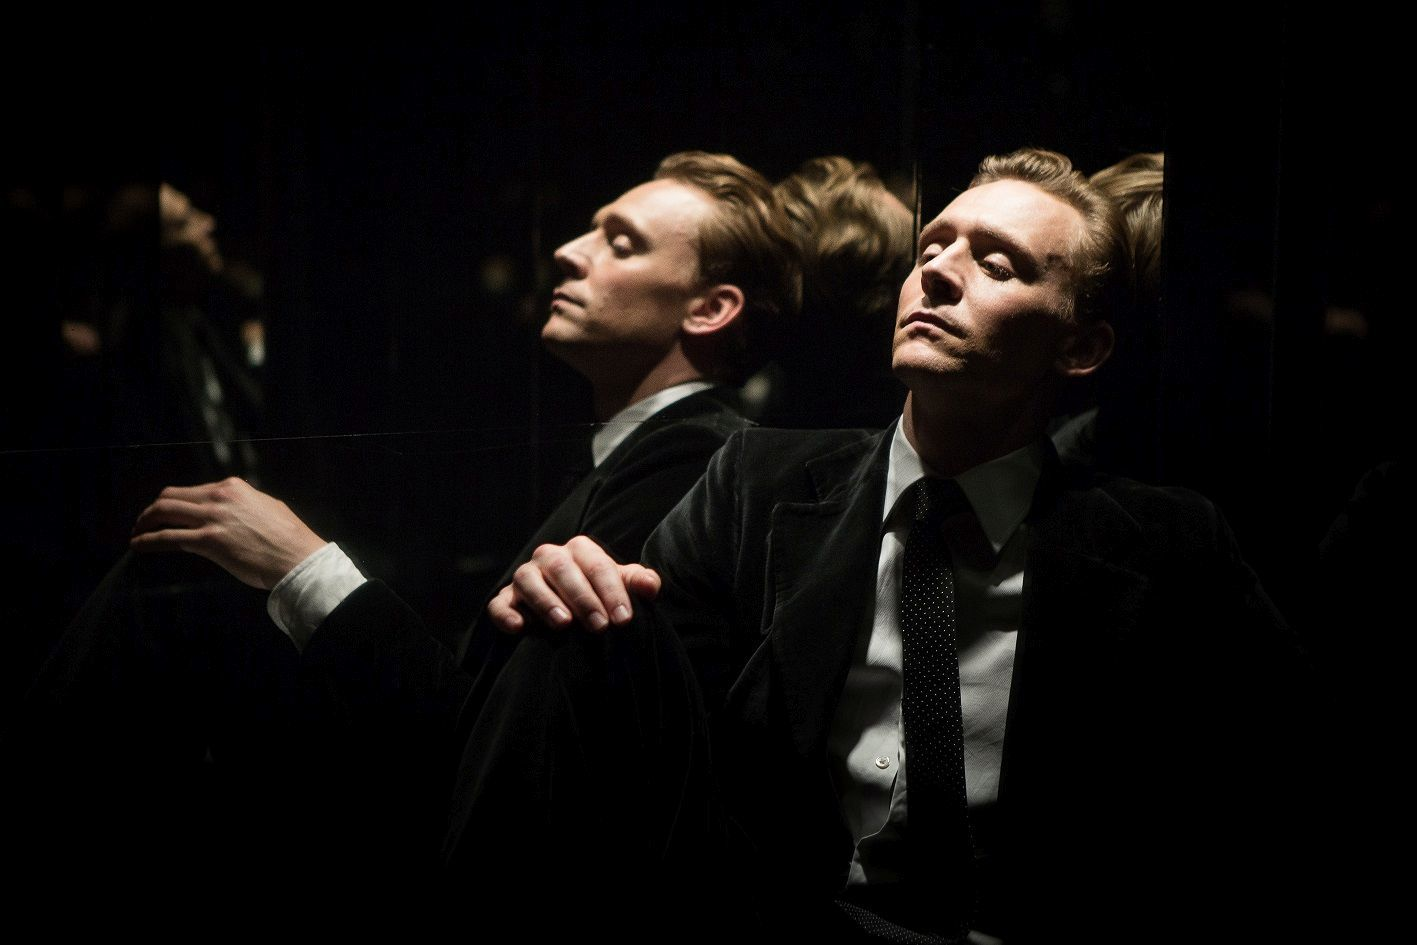 ​© RPC HIGH-RISE LIMITED / THE BRITISH FILM INSTITUTE / CHANNEL FOUR TELEVISION CORPORATION 2015